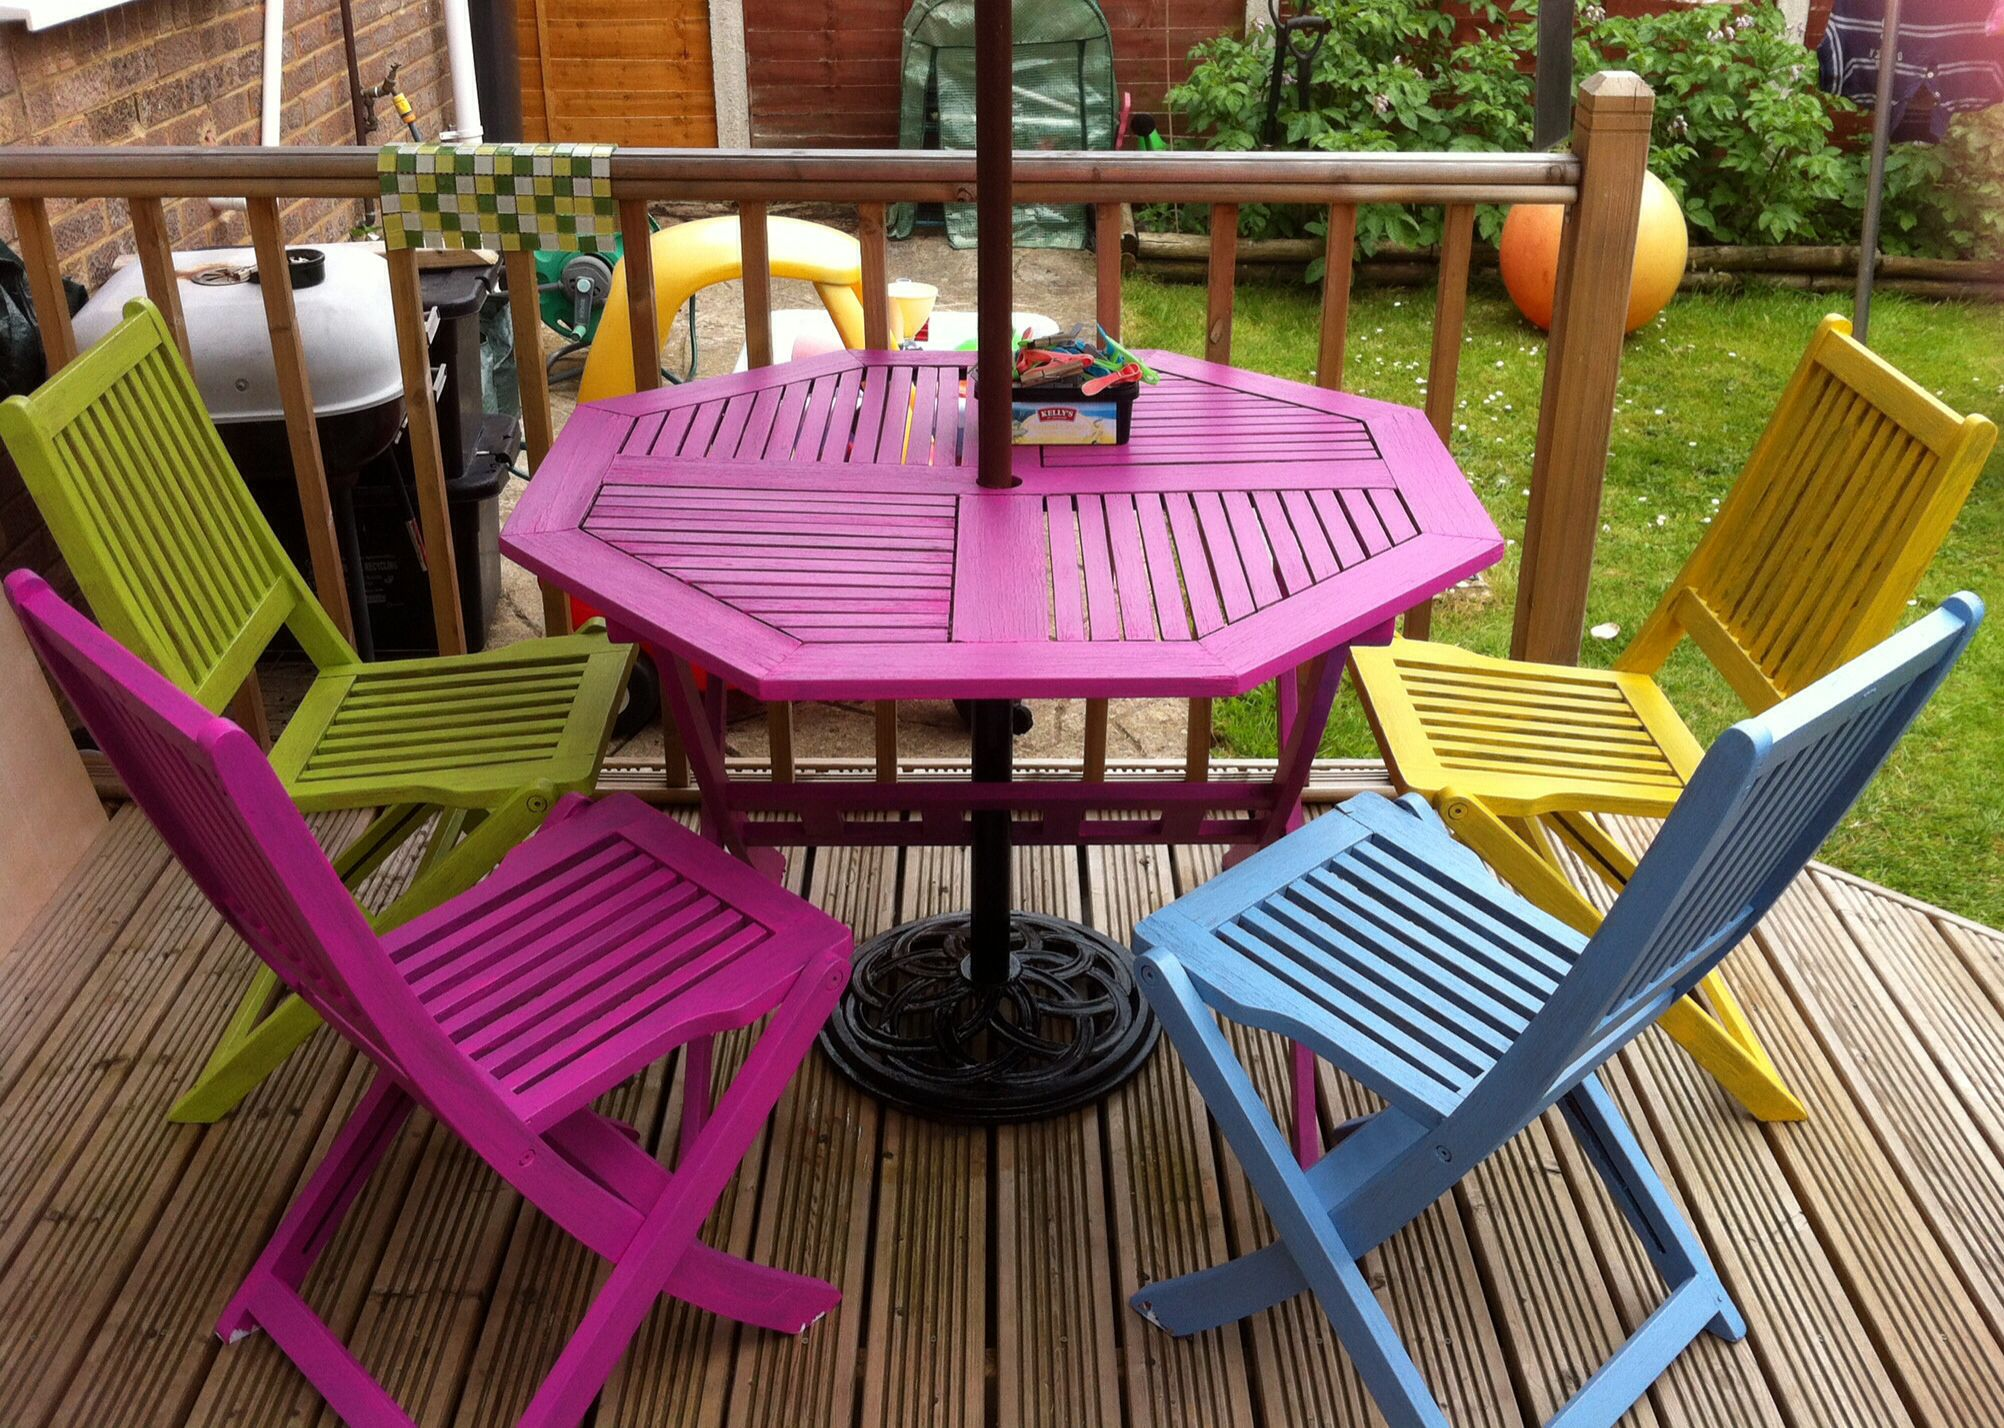 Bright painted garden furniture, adds a bit of colour to